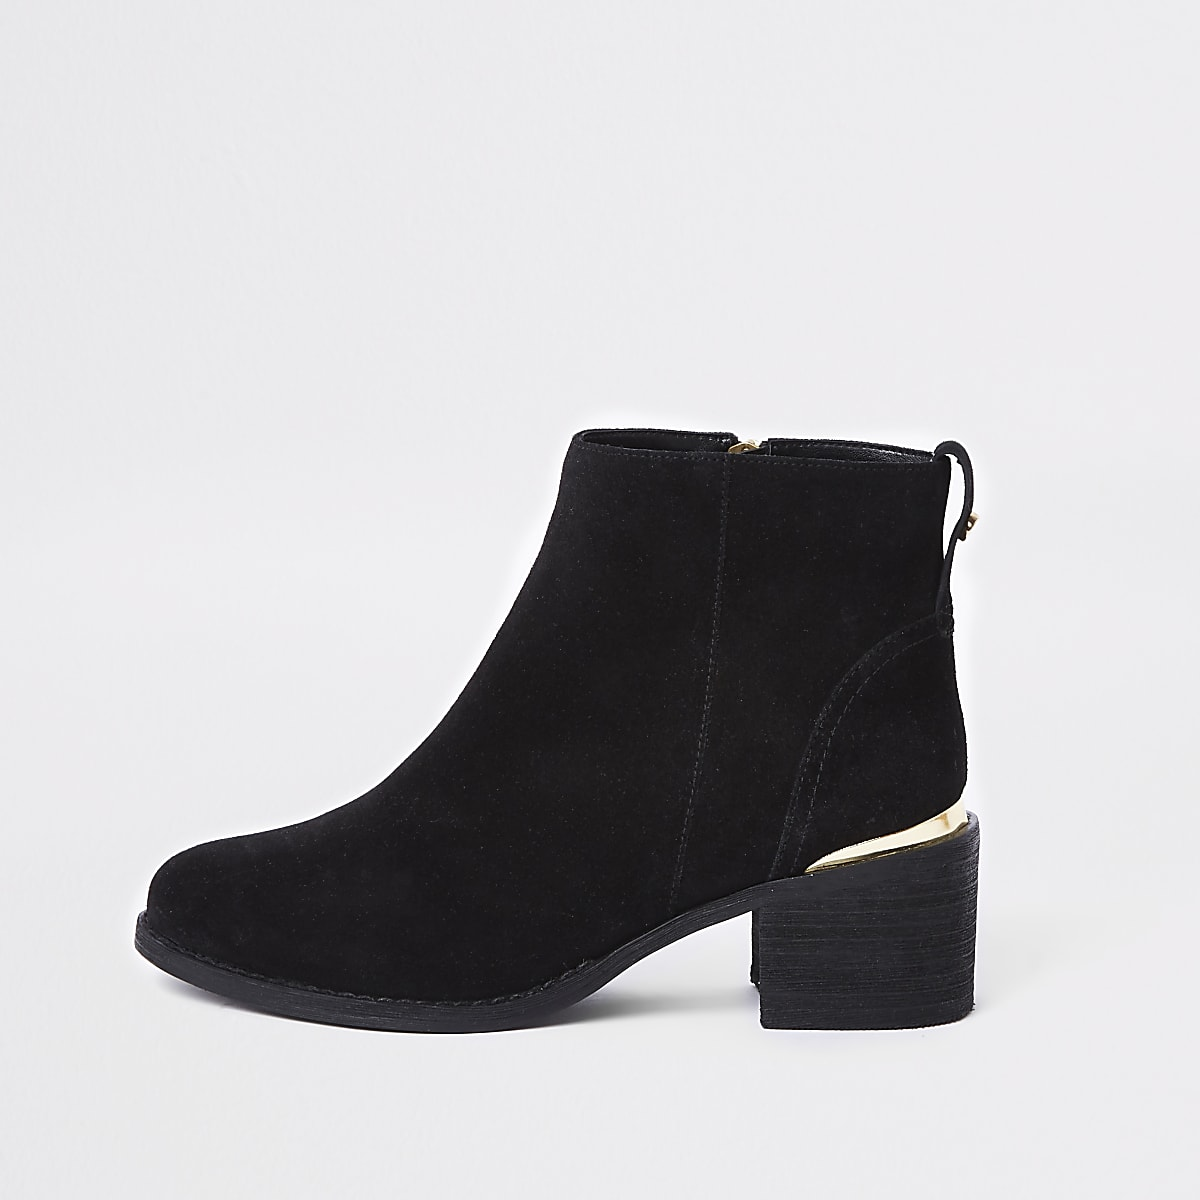 537336a13 Black suede block heel ankle boots - Boots - Shoes & Boots - women